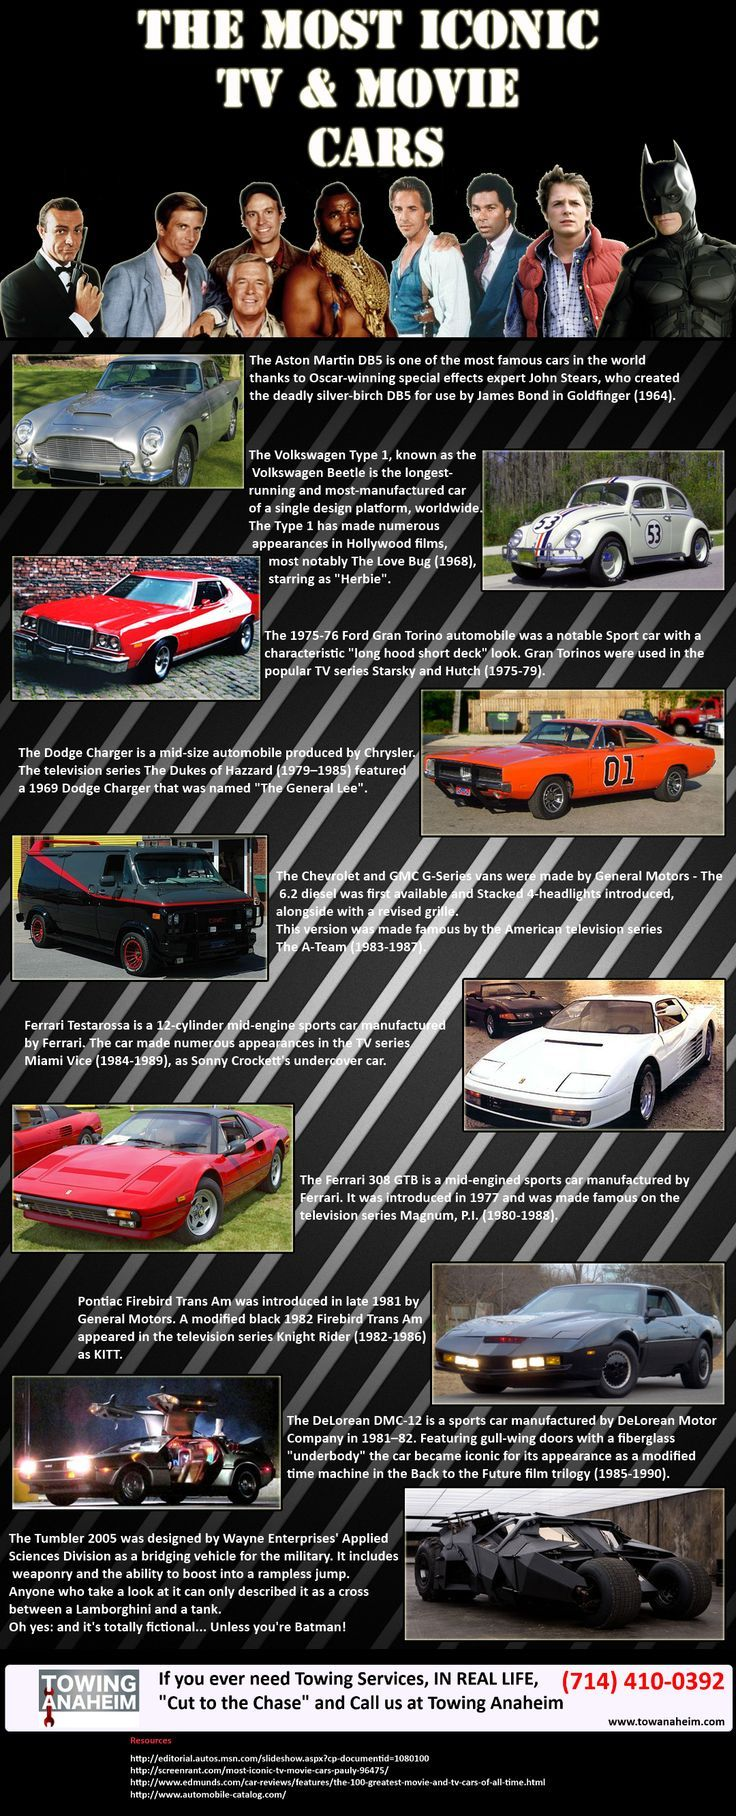 Cool Visualistan The Most Iconic TV And Movie Cars Infographic - Lightning mcqueen custom vinyl decals for cardisney pixar cars a walk down cars advertising memory lane take